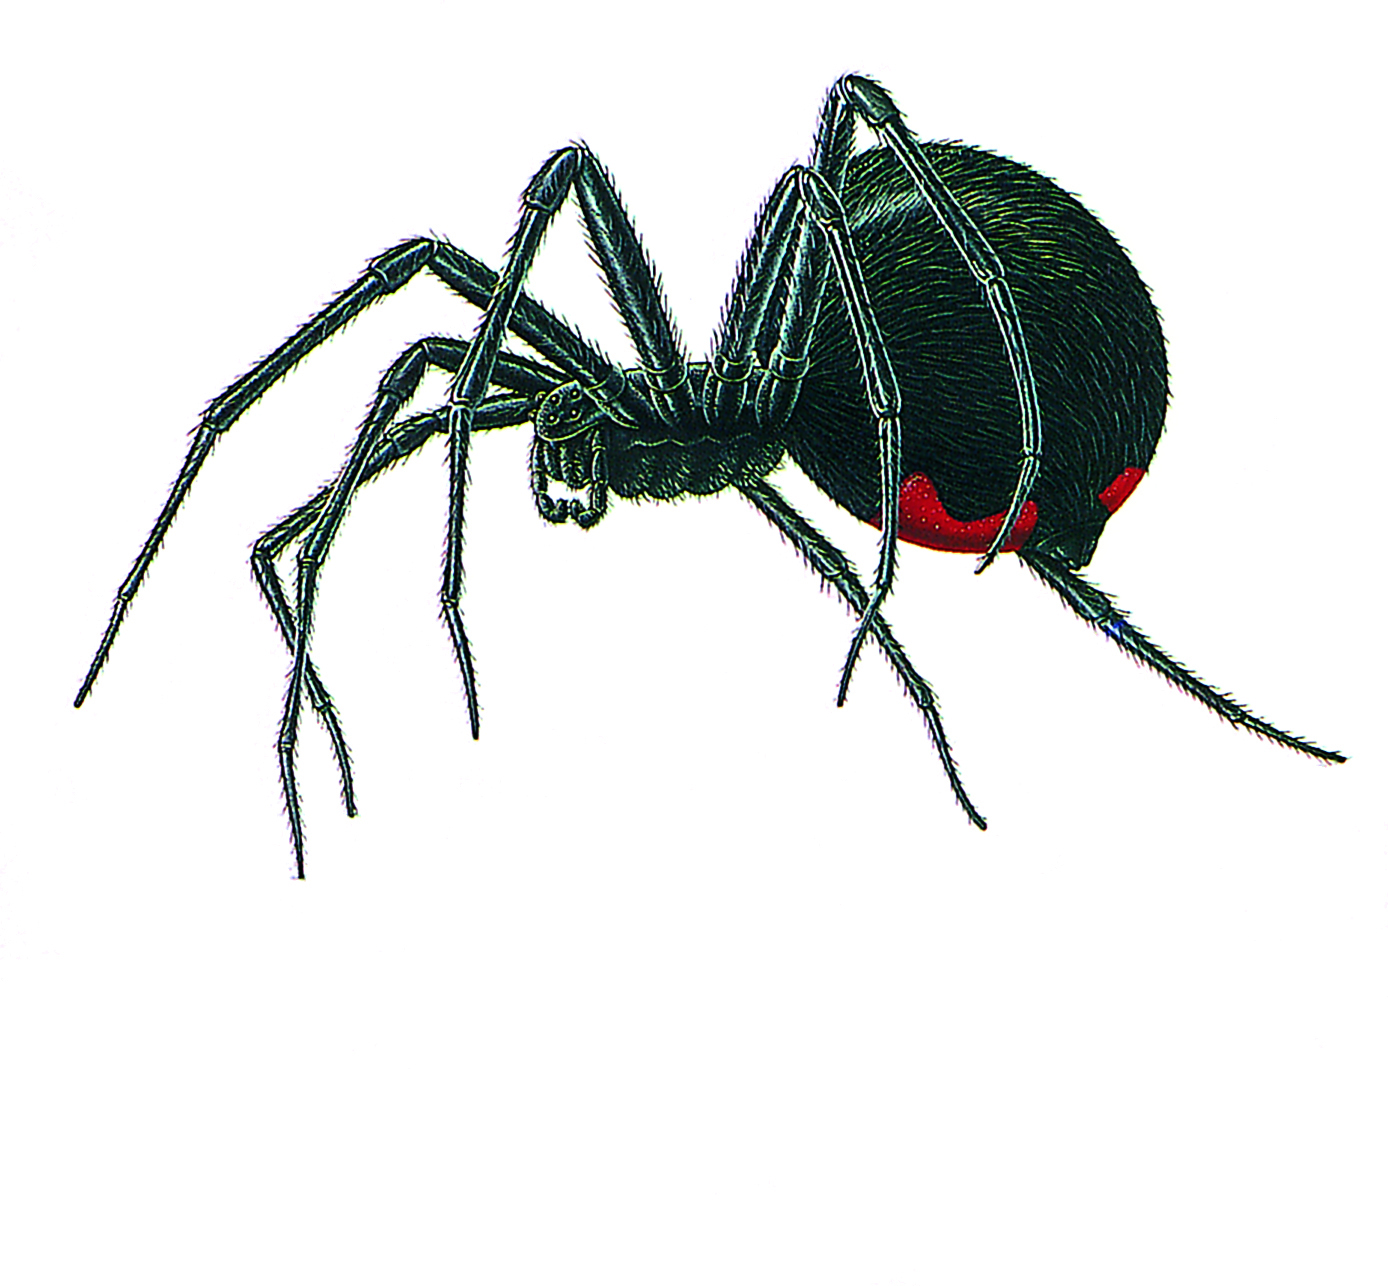 Black Widow Spider Extermination Pest, INC